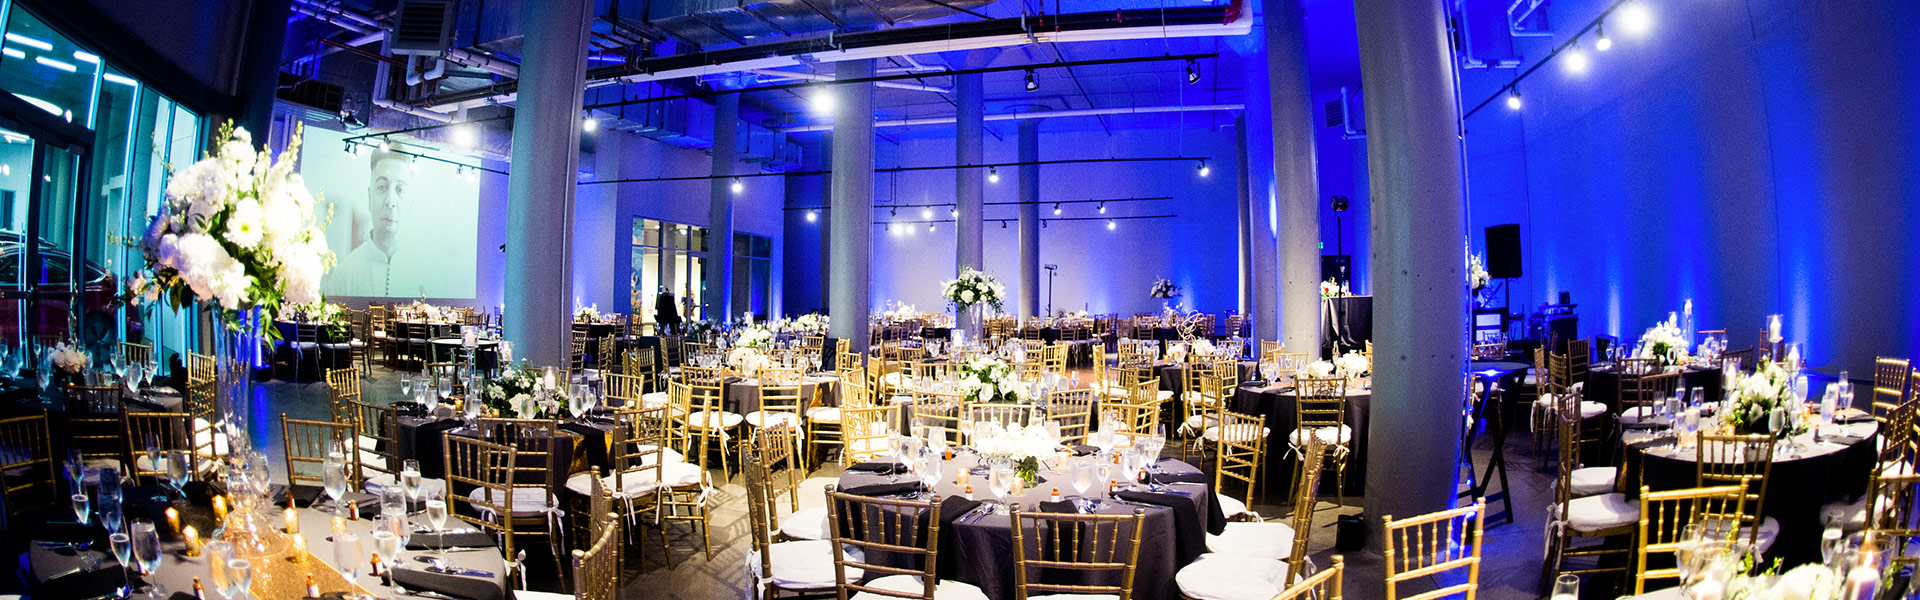 big open venue decorated for wedding